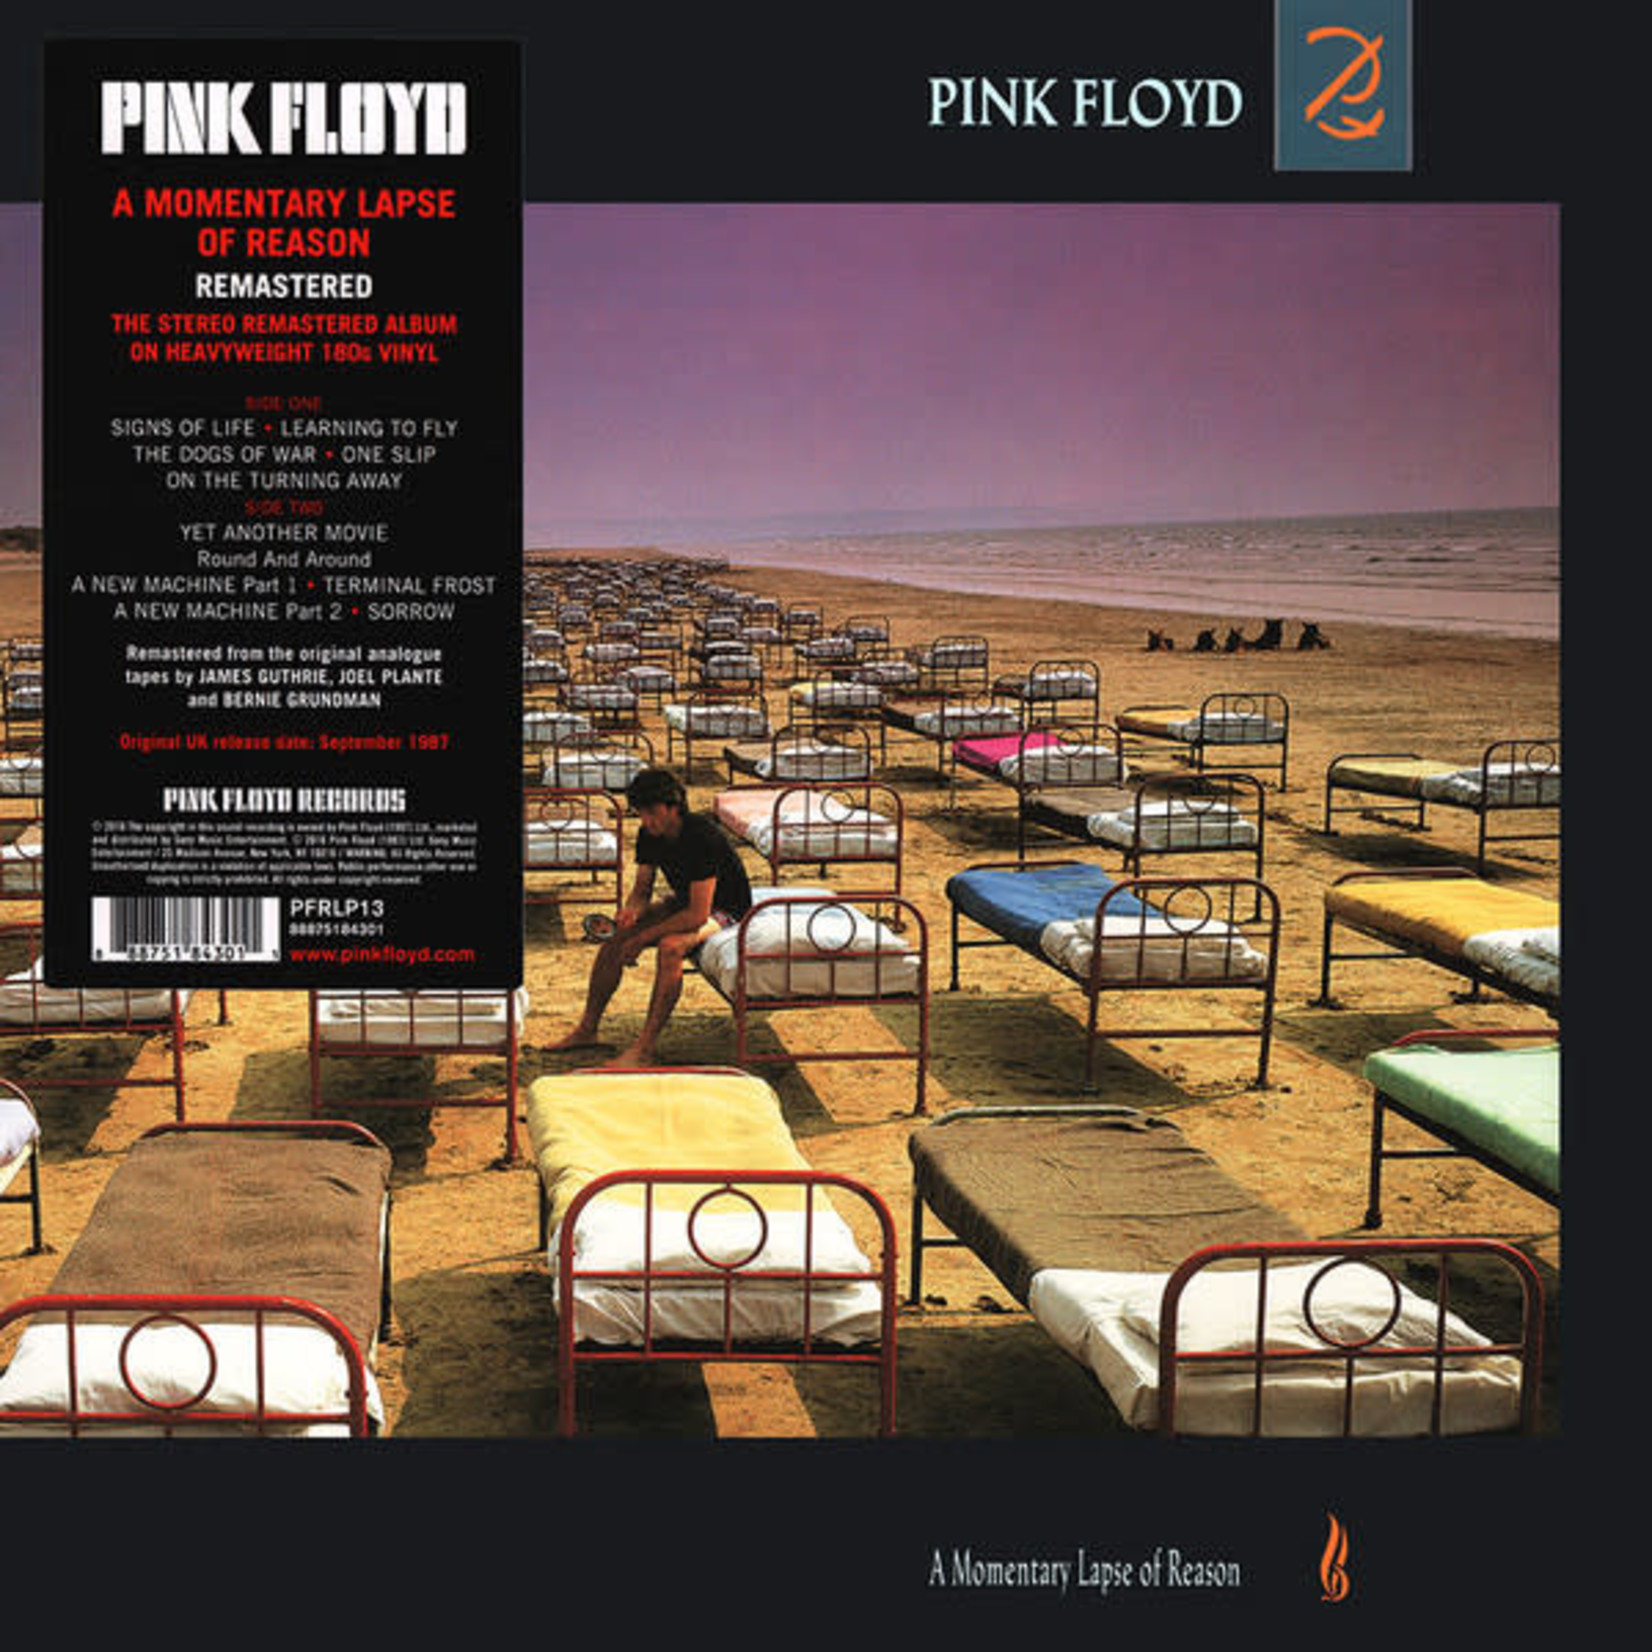 PINK FLOYD A MOMENTARY LAPSE OF REASON (STEREO REMASTERED)